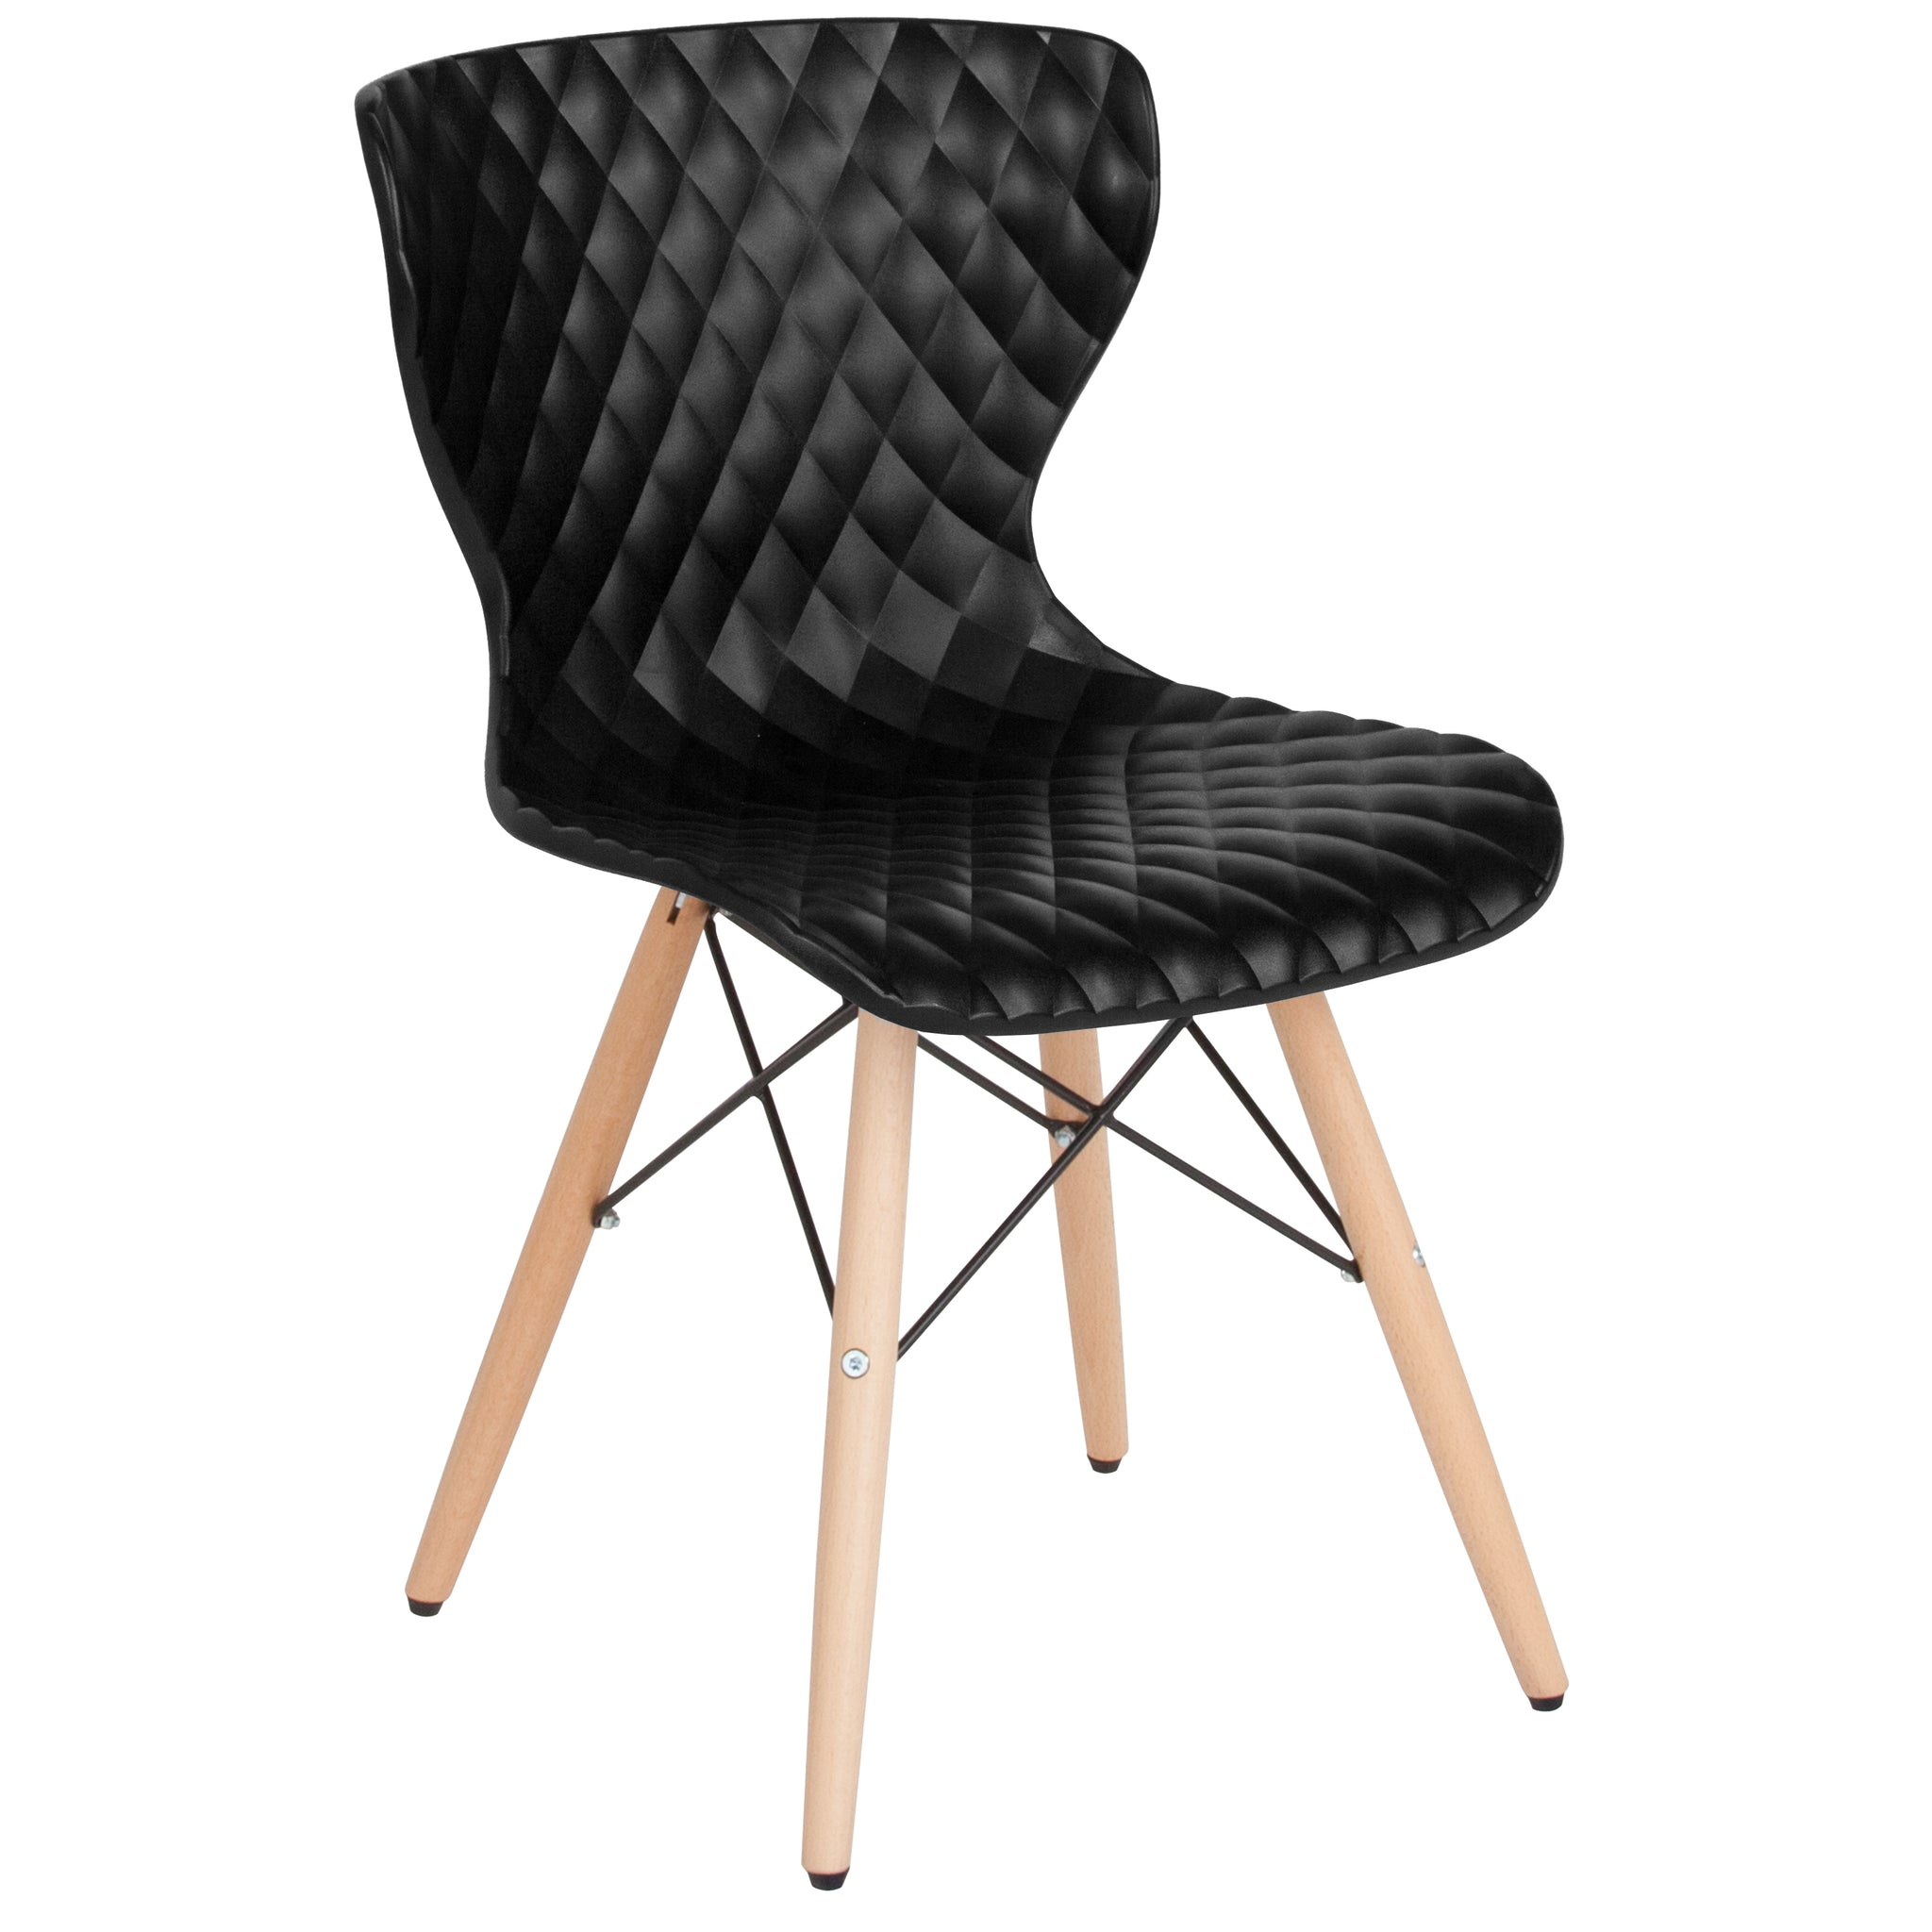 Bedford Contemporary Design Plastic Chair with Wooden Legs: Gray